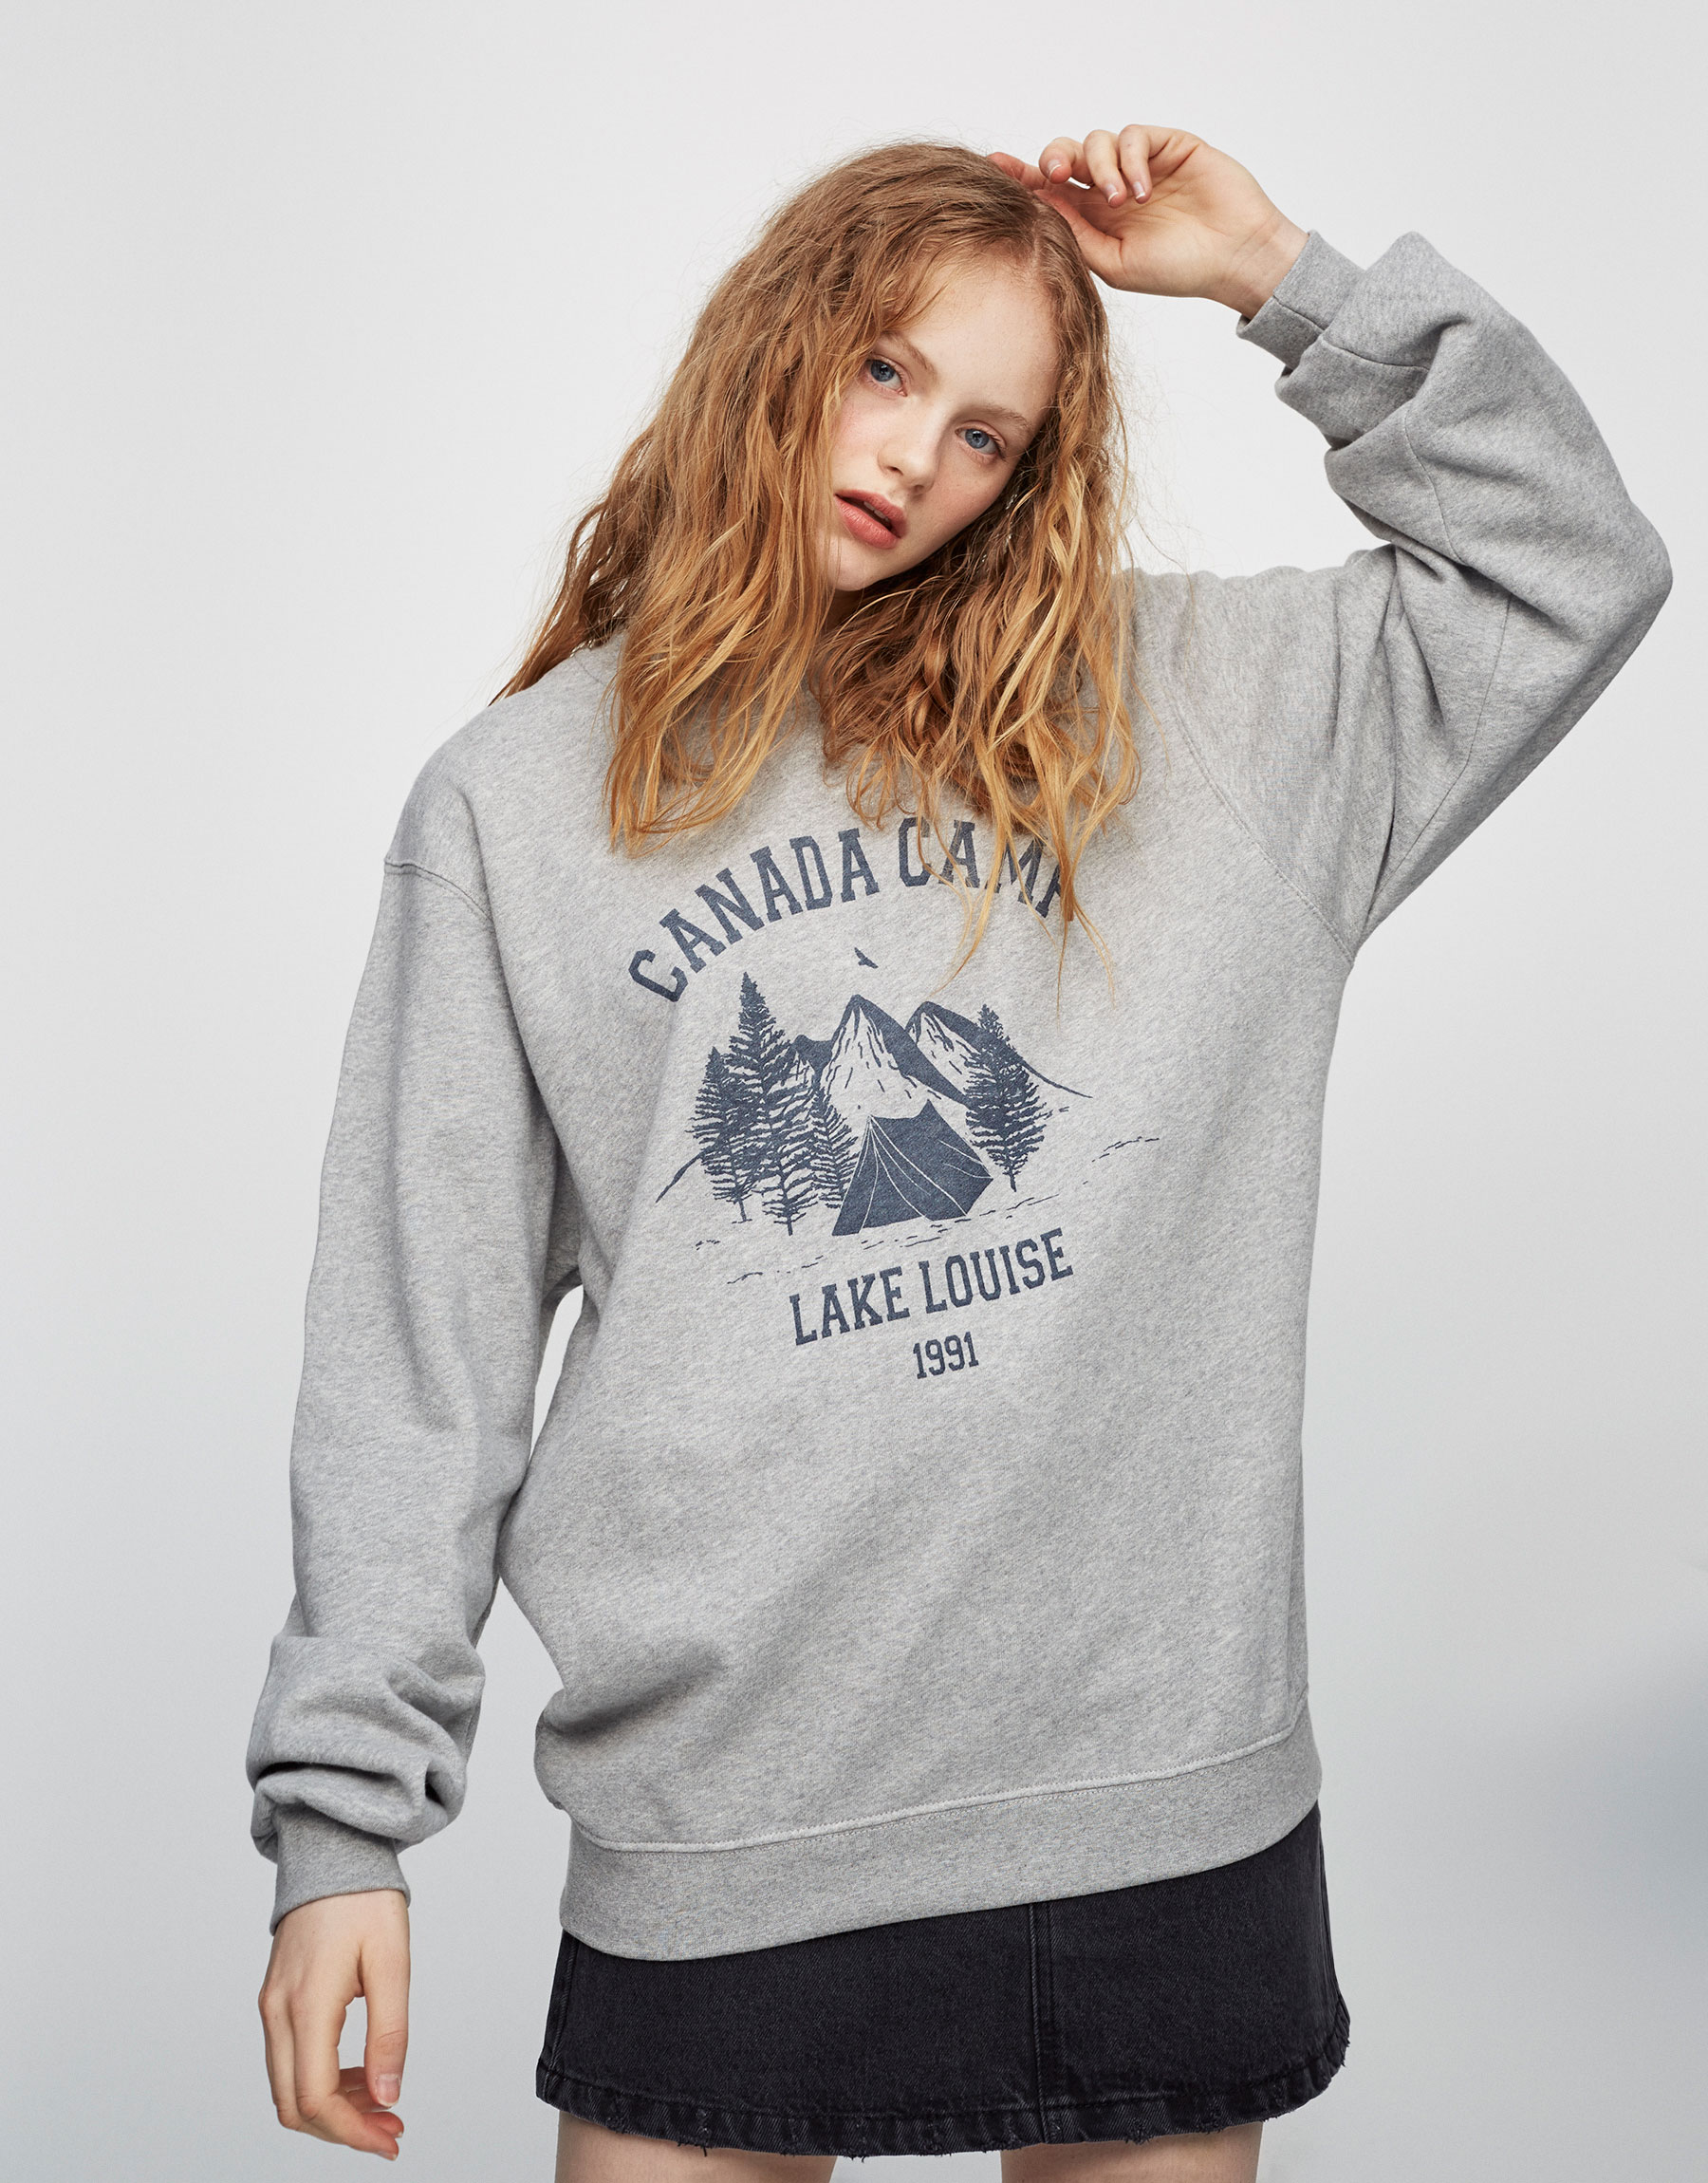 Oversized sweatshirt with print